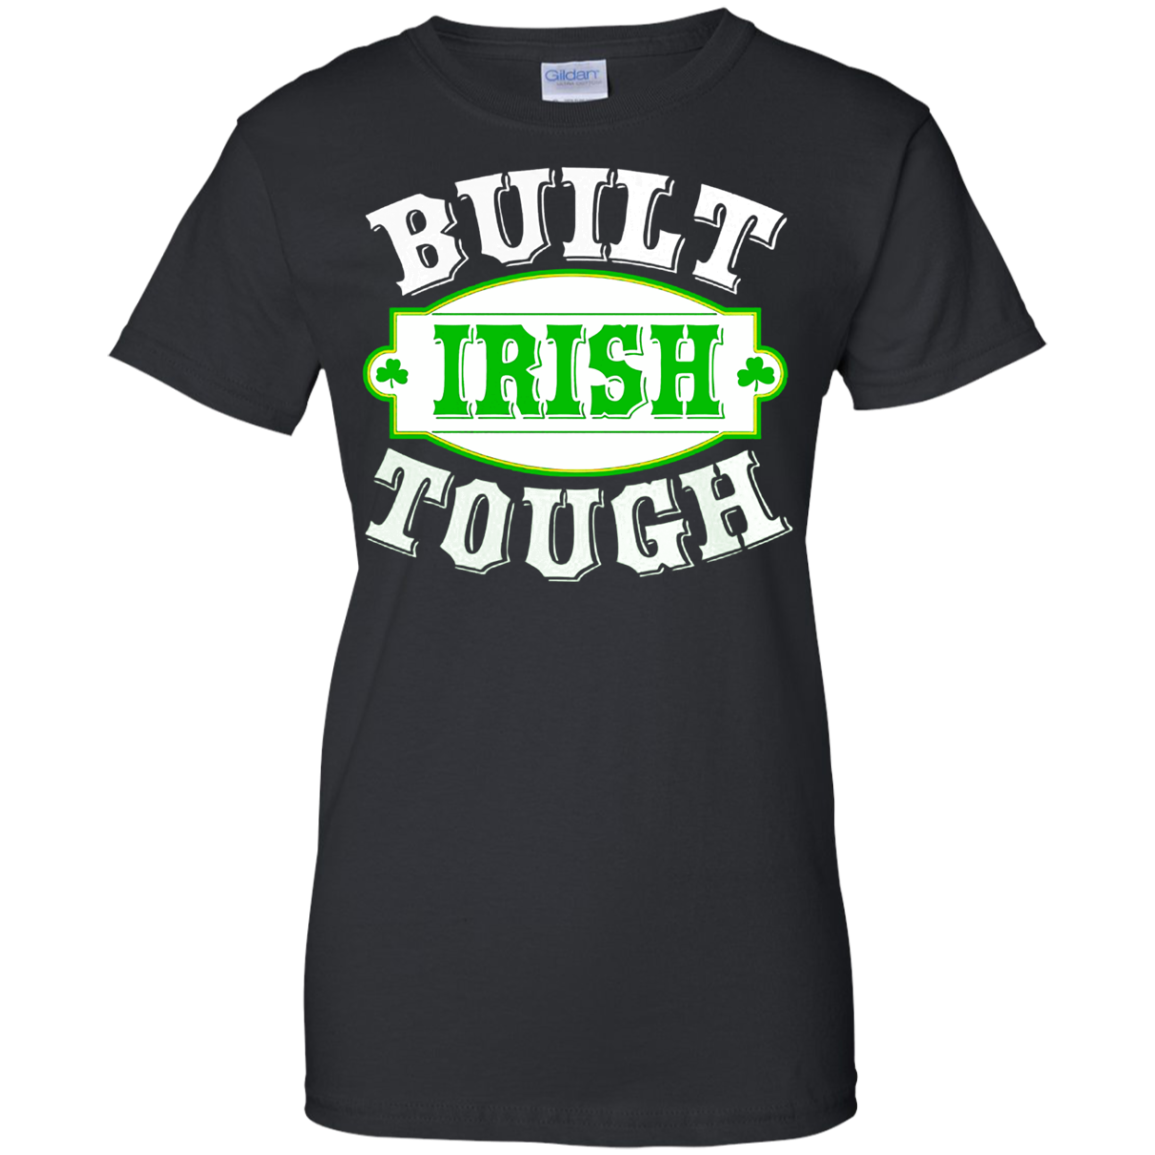 Irish Built Tough Cool St Patrick Day Clothing St Patrick's Day Shirts Hoodies For Men And Women - Blue Fox